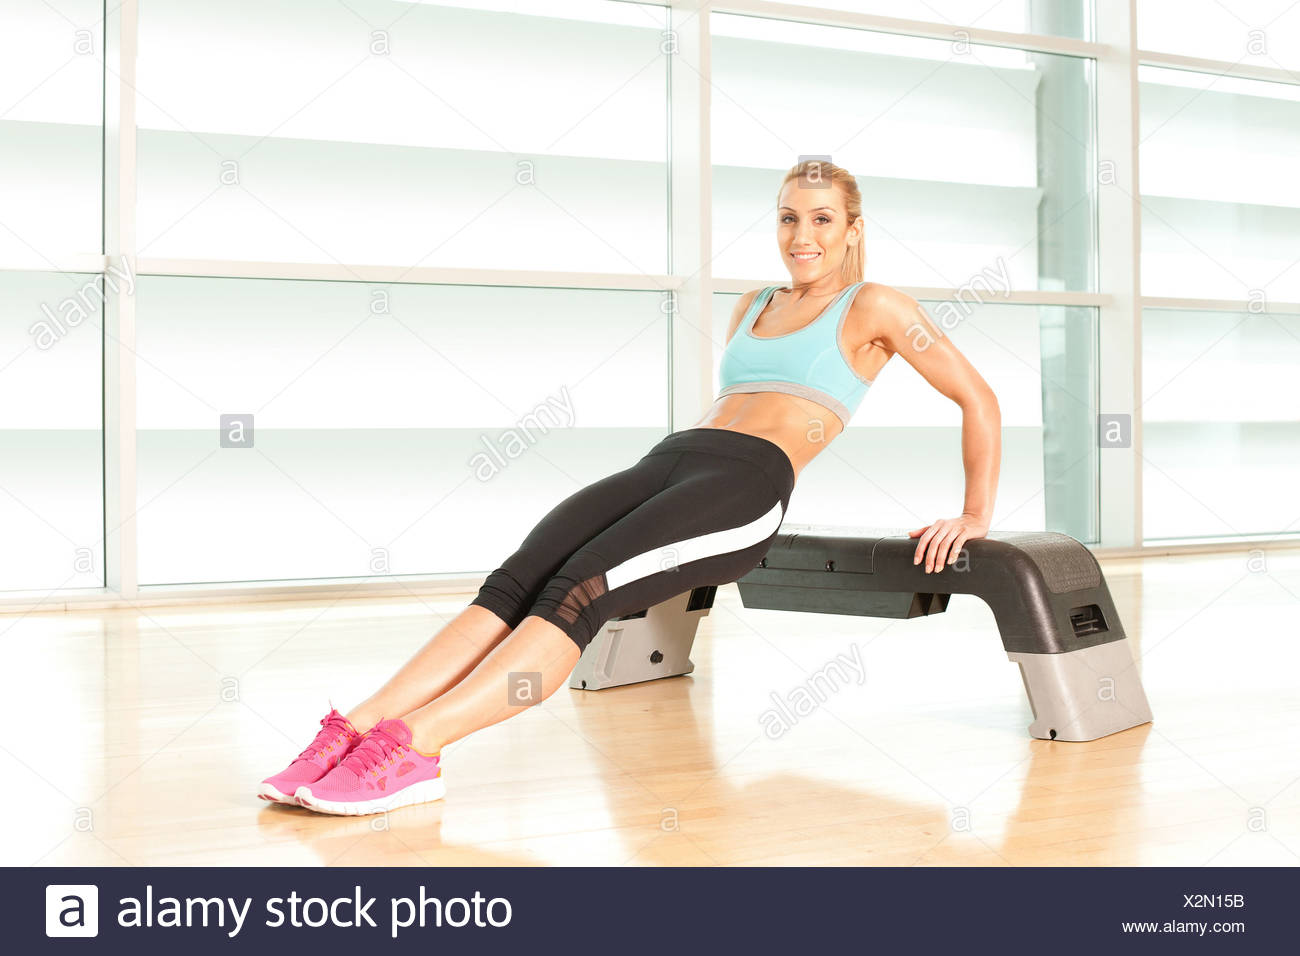 Woman exercising on step - Stock Image